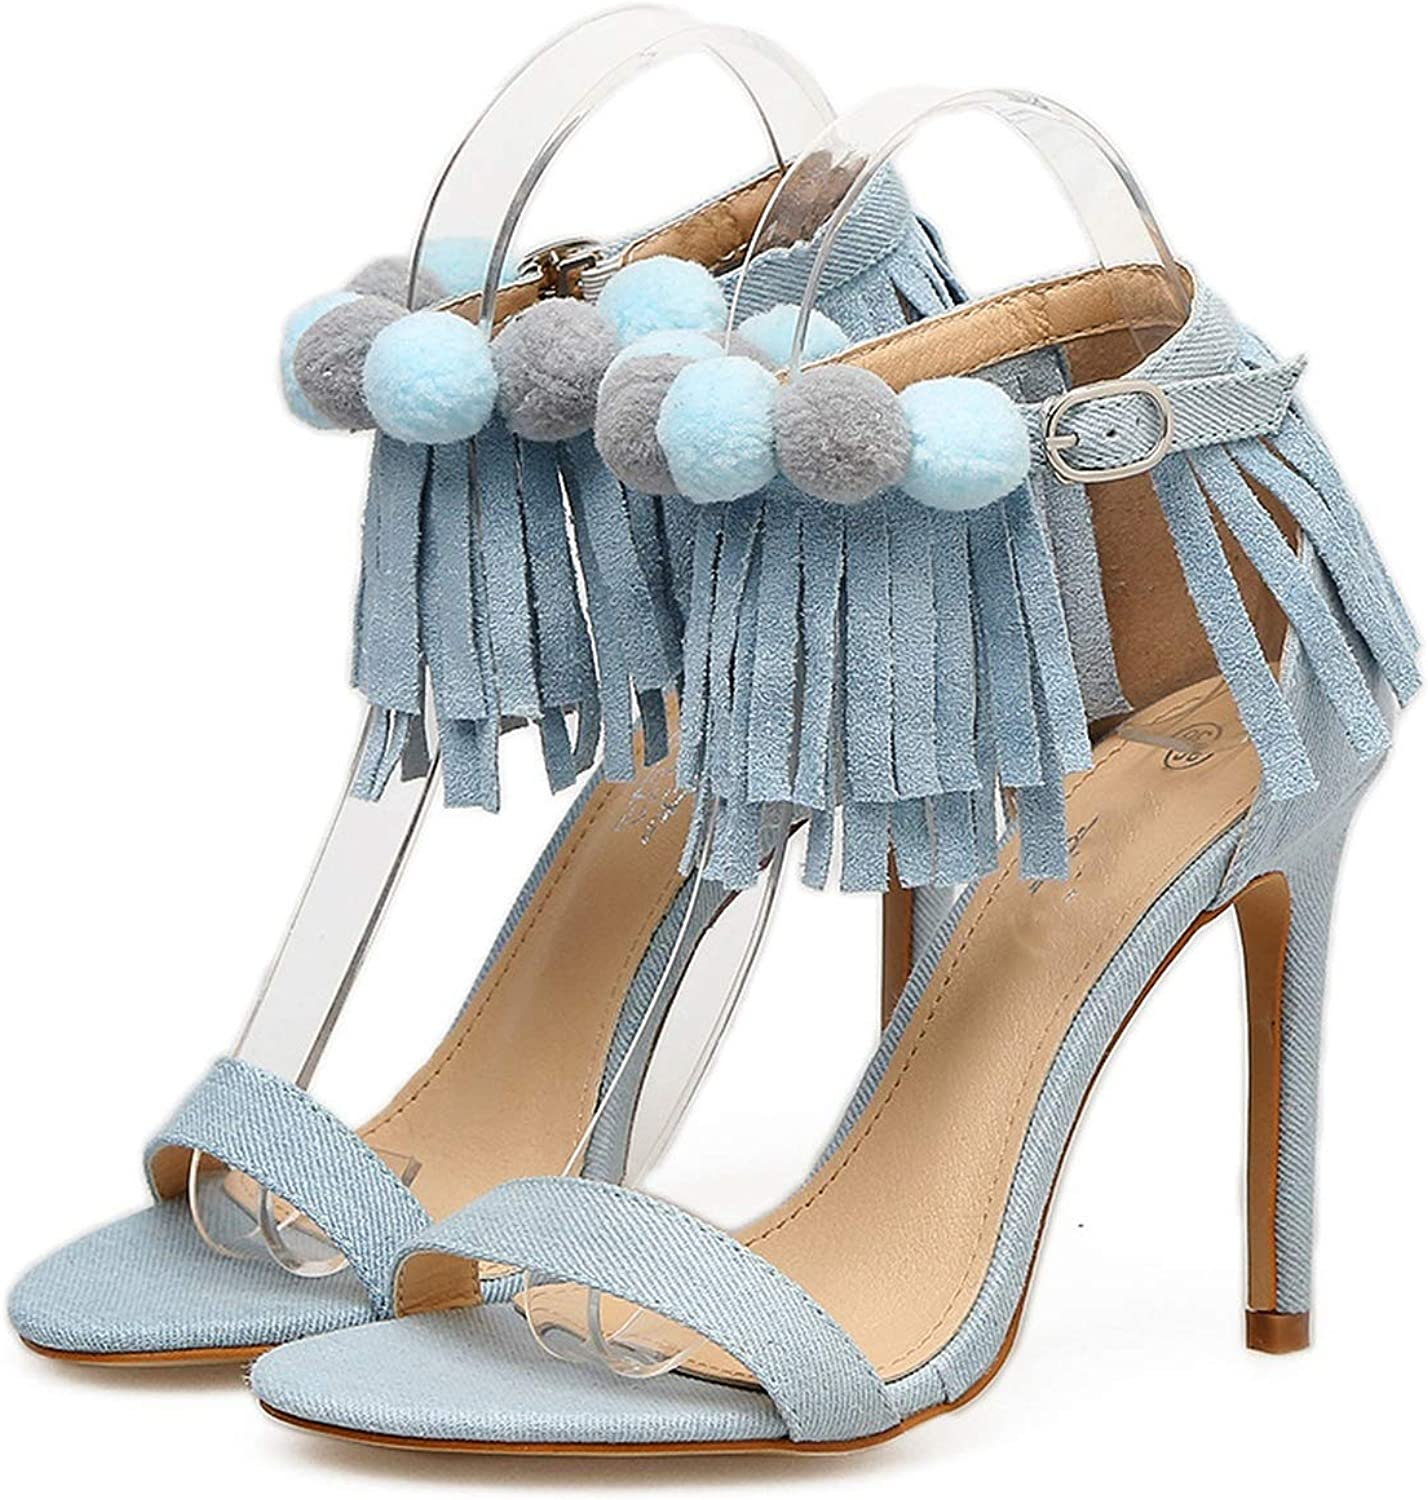 Pretty-Shop sandals Spring and Summer Denim Tassel Hair Ball Ring Foot Strap High Heel,